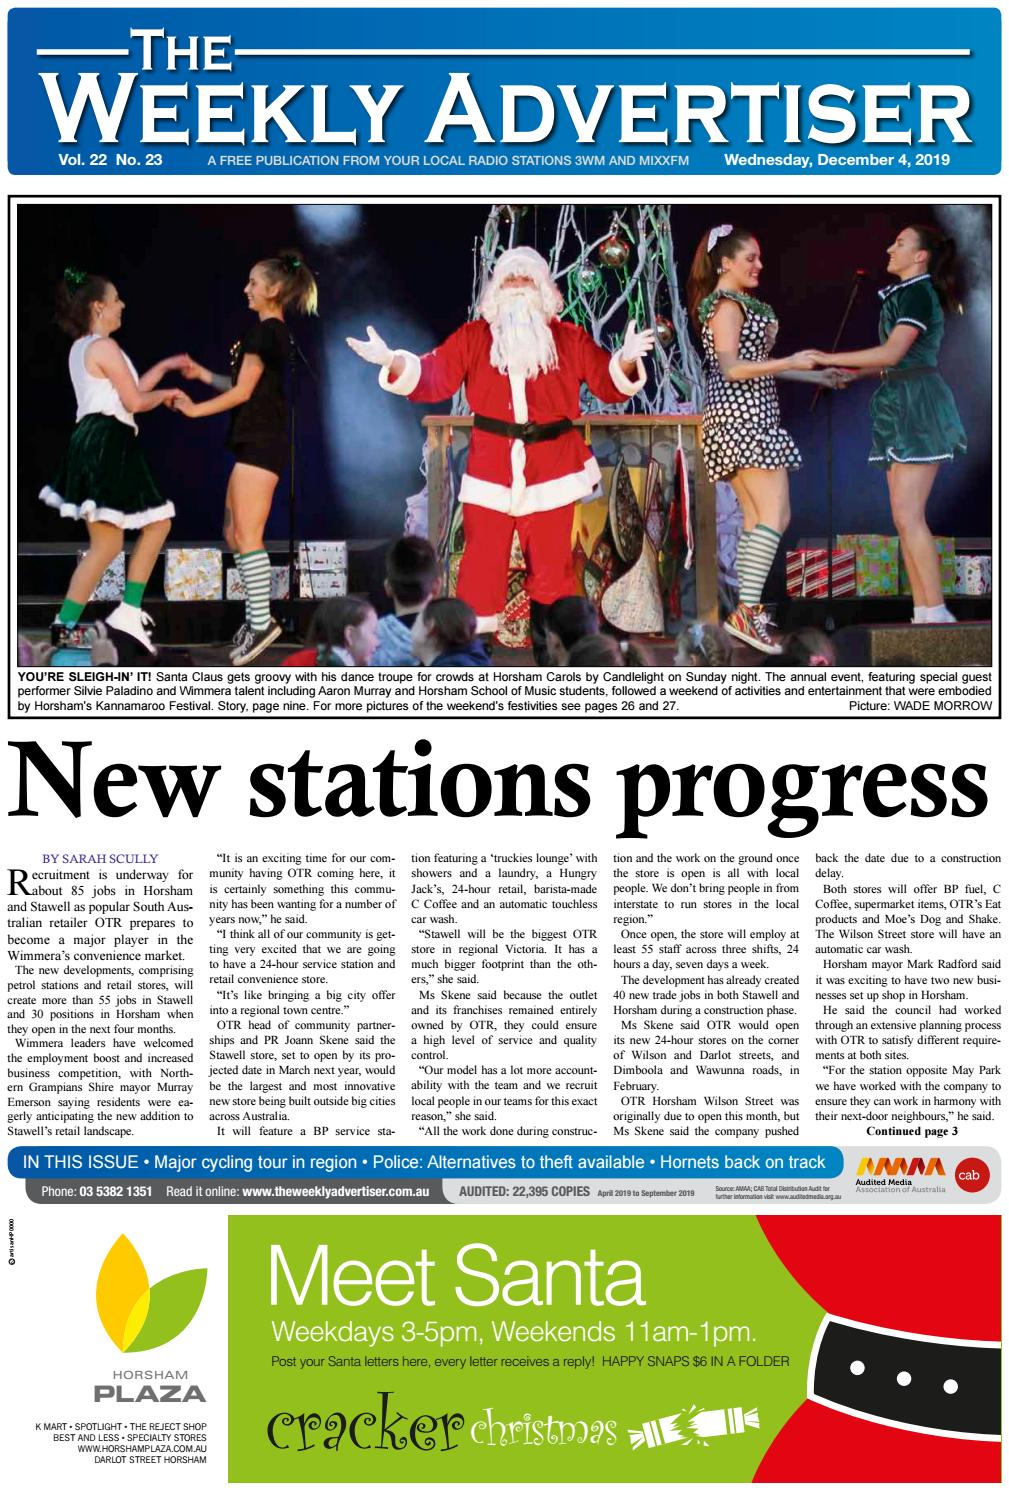 The Weekly Advertiser Wednesday December 4 2019 By The